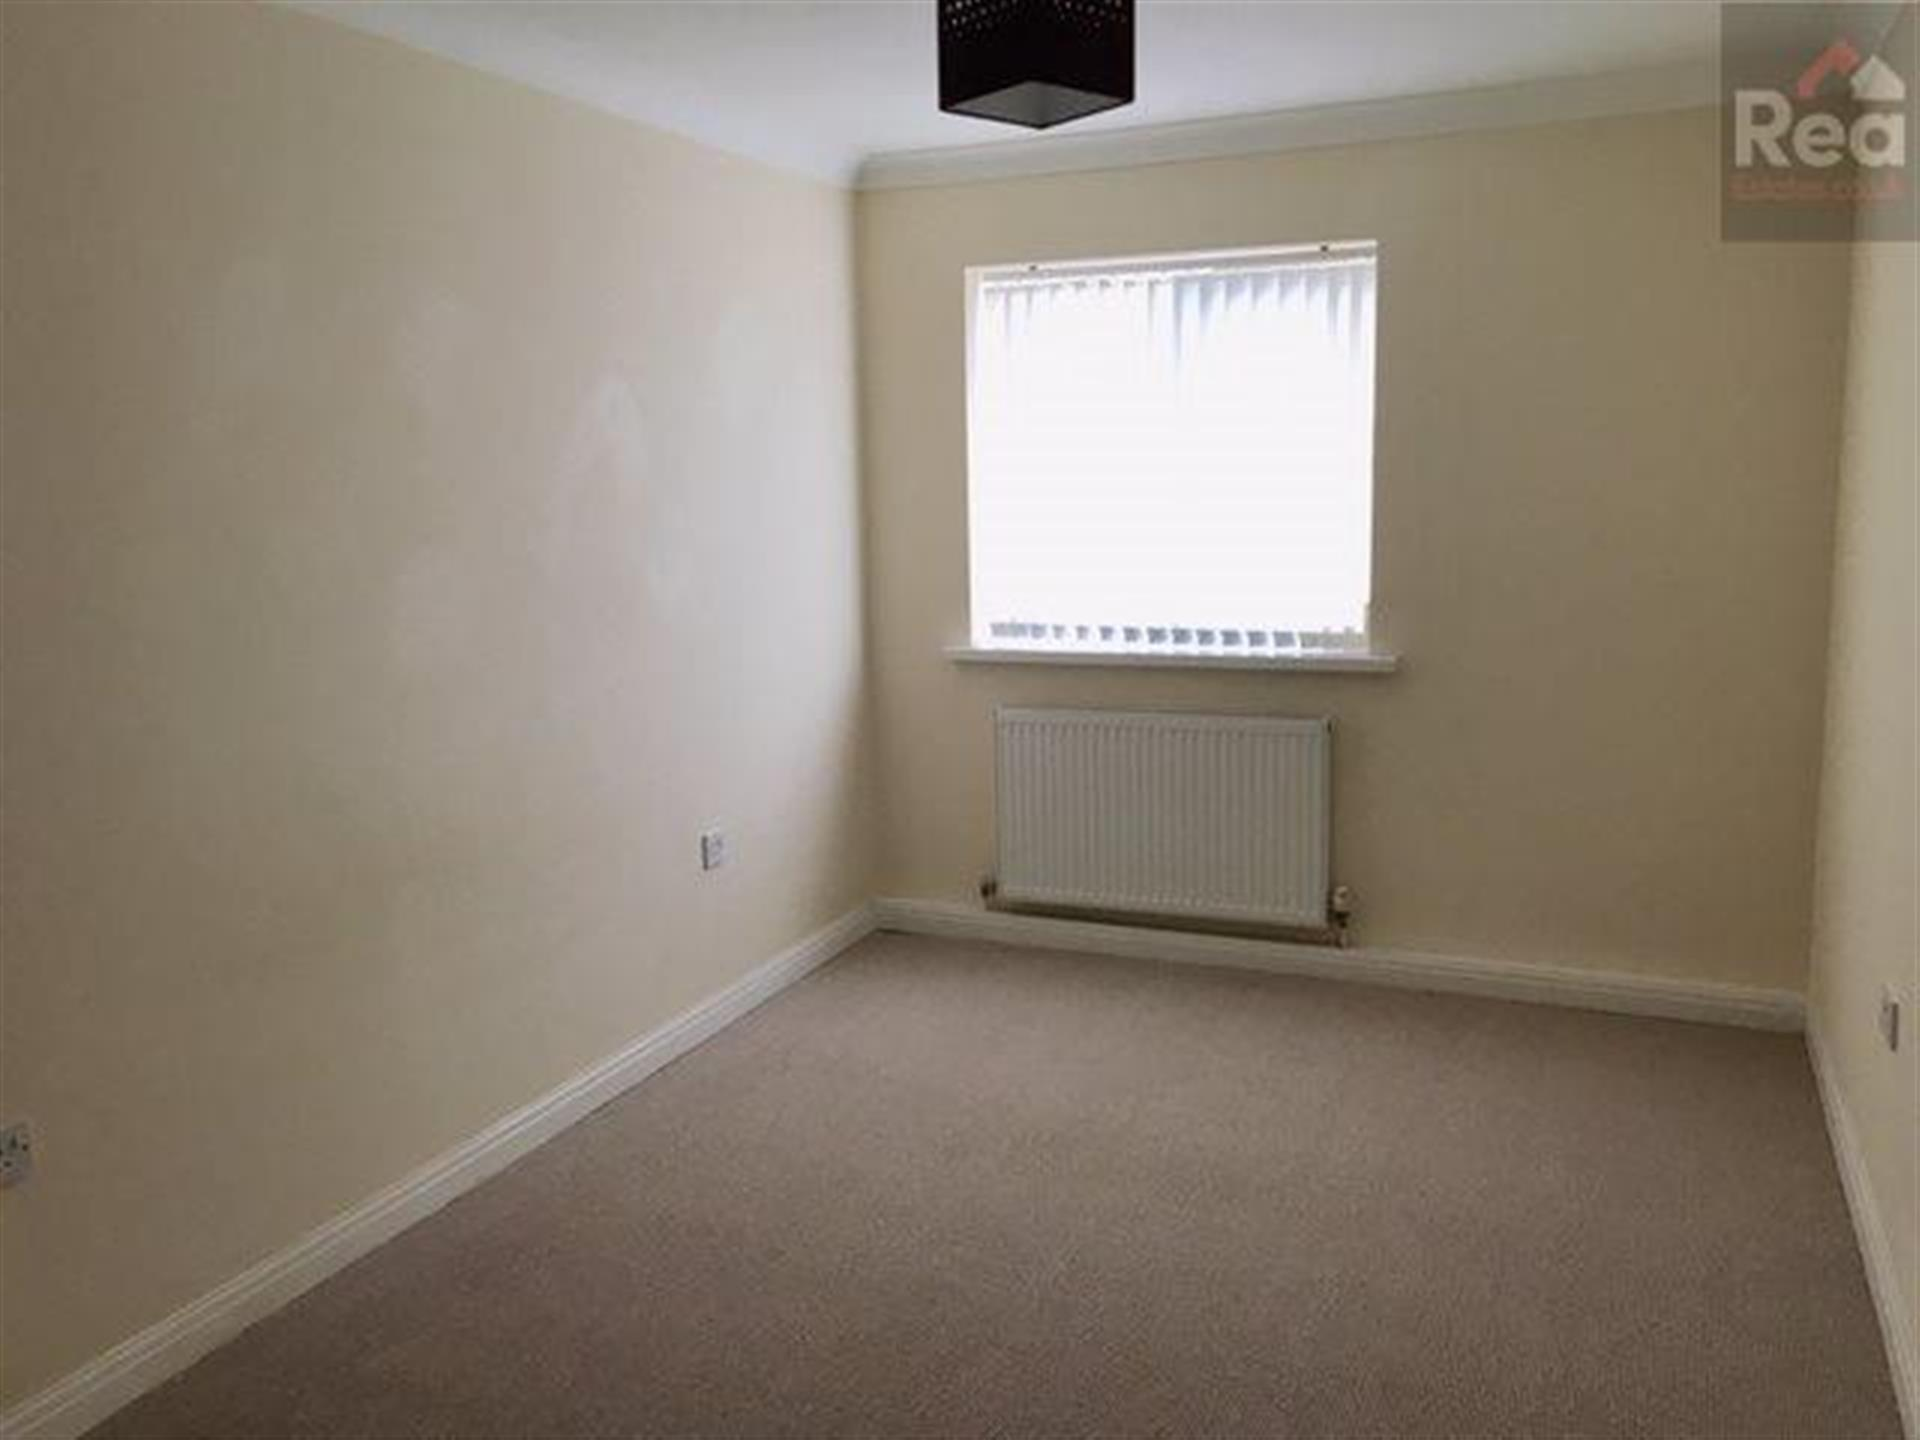 2 bedroom flat flat / apartment To Let in Tindale Crescent, Bishop Auckland - photograph 5.